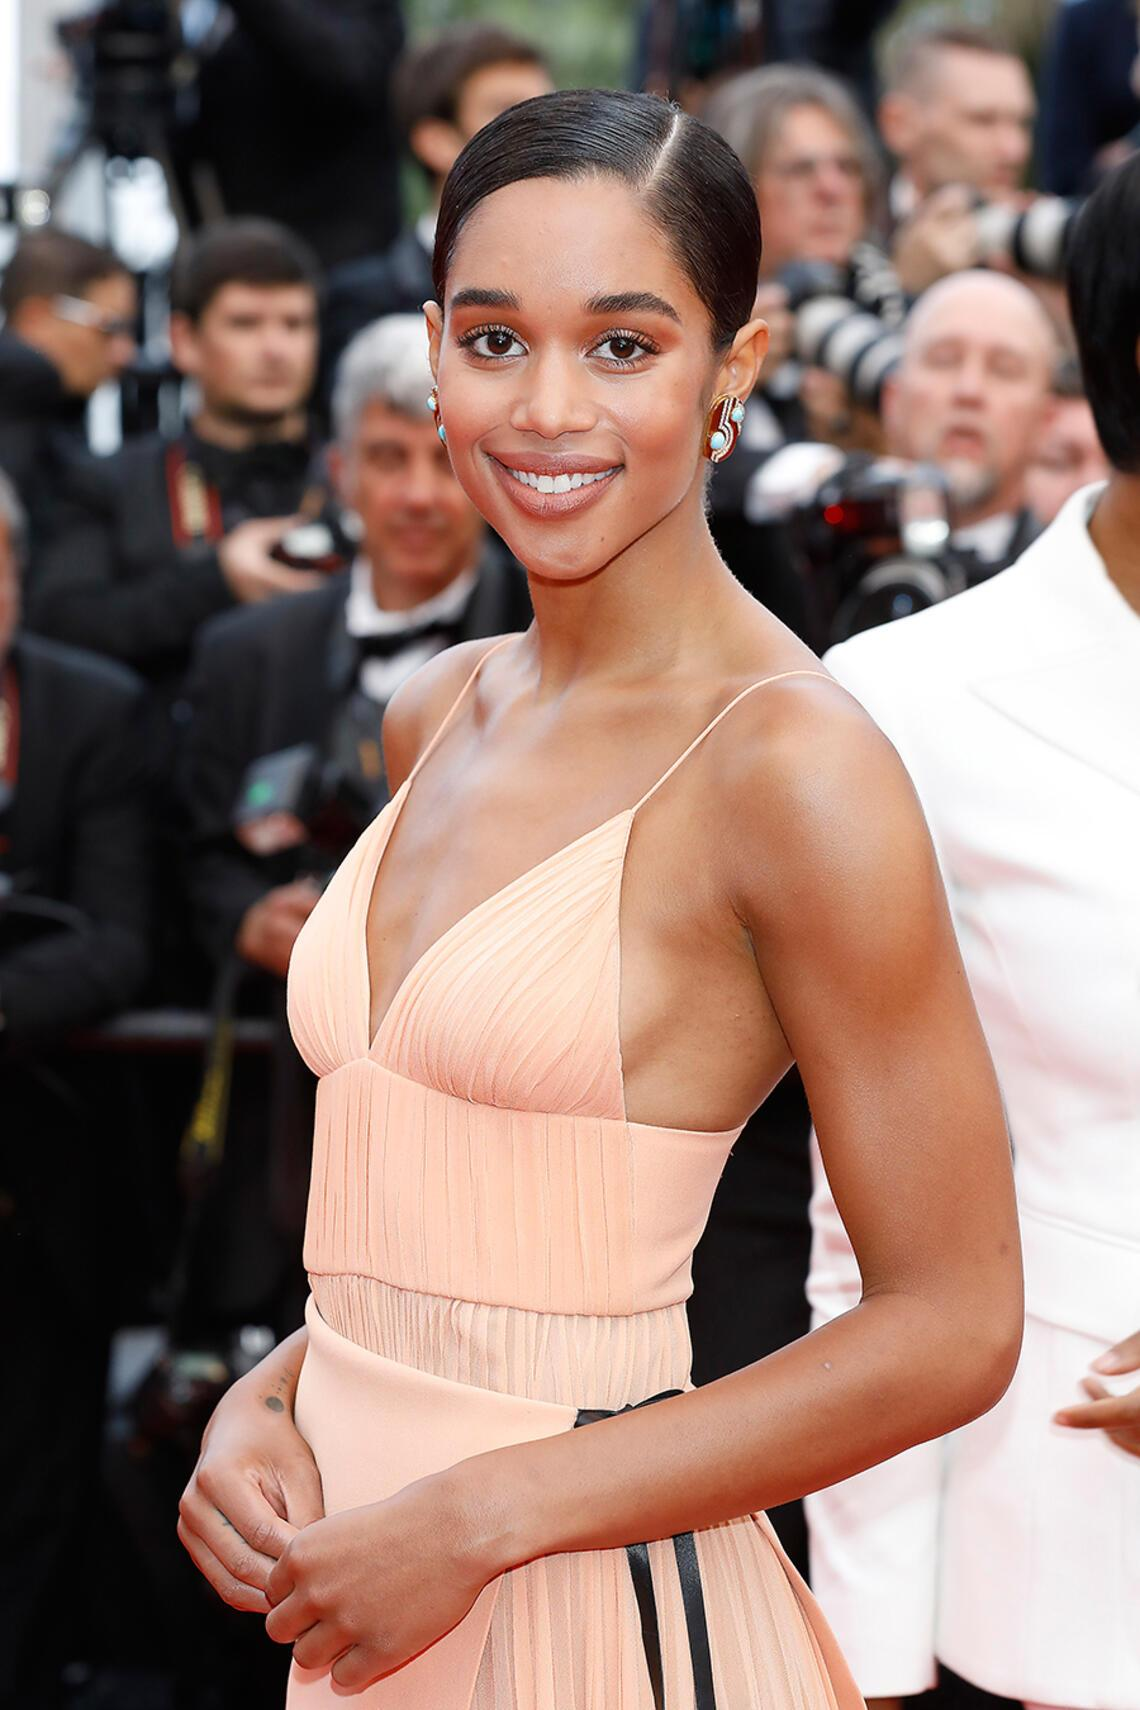 Laura Harrier in Cannes